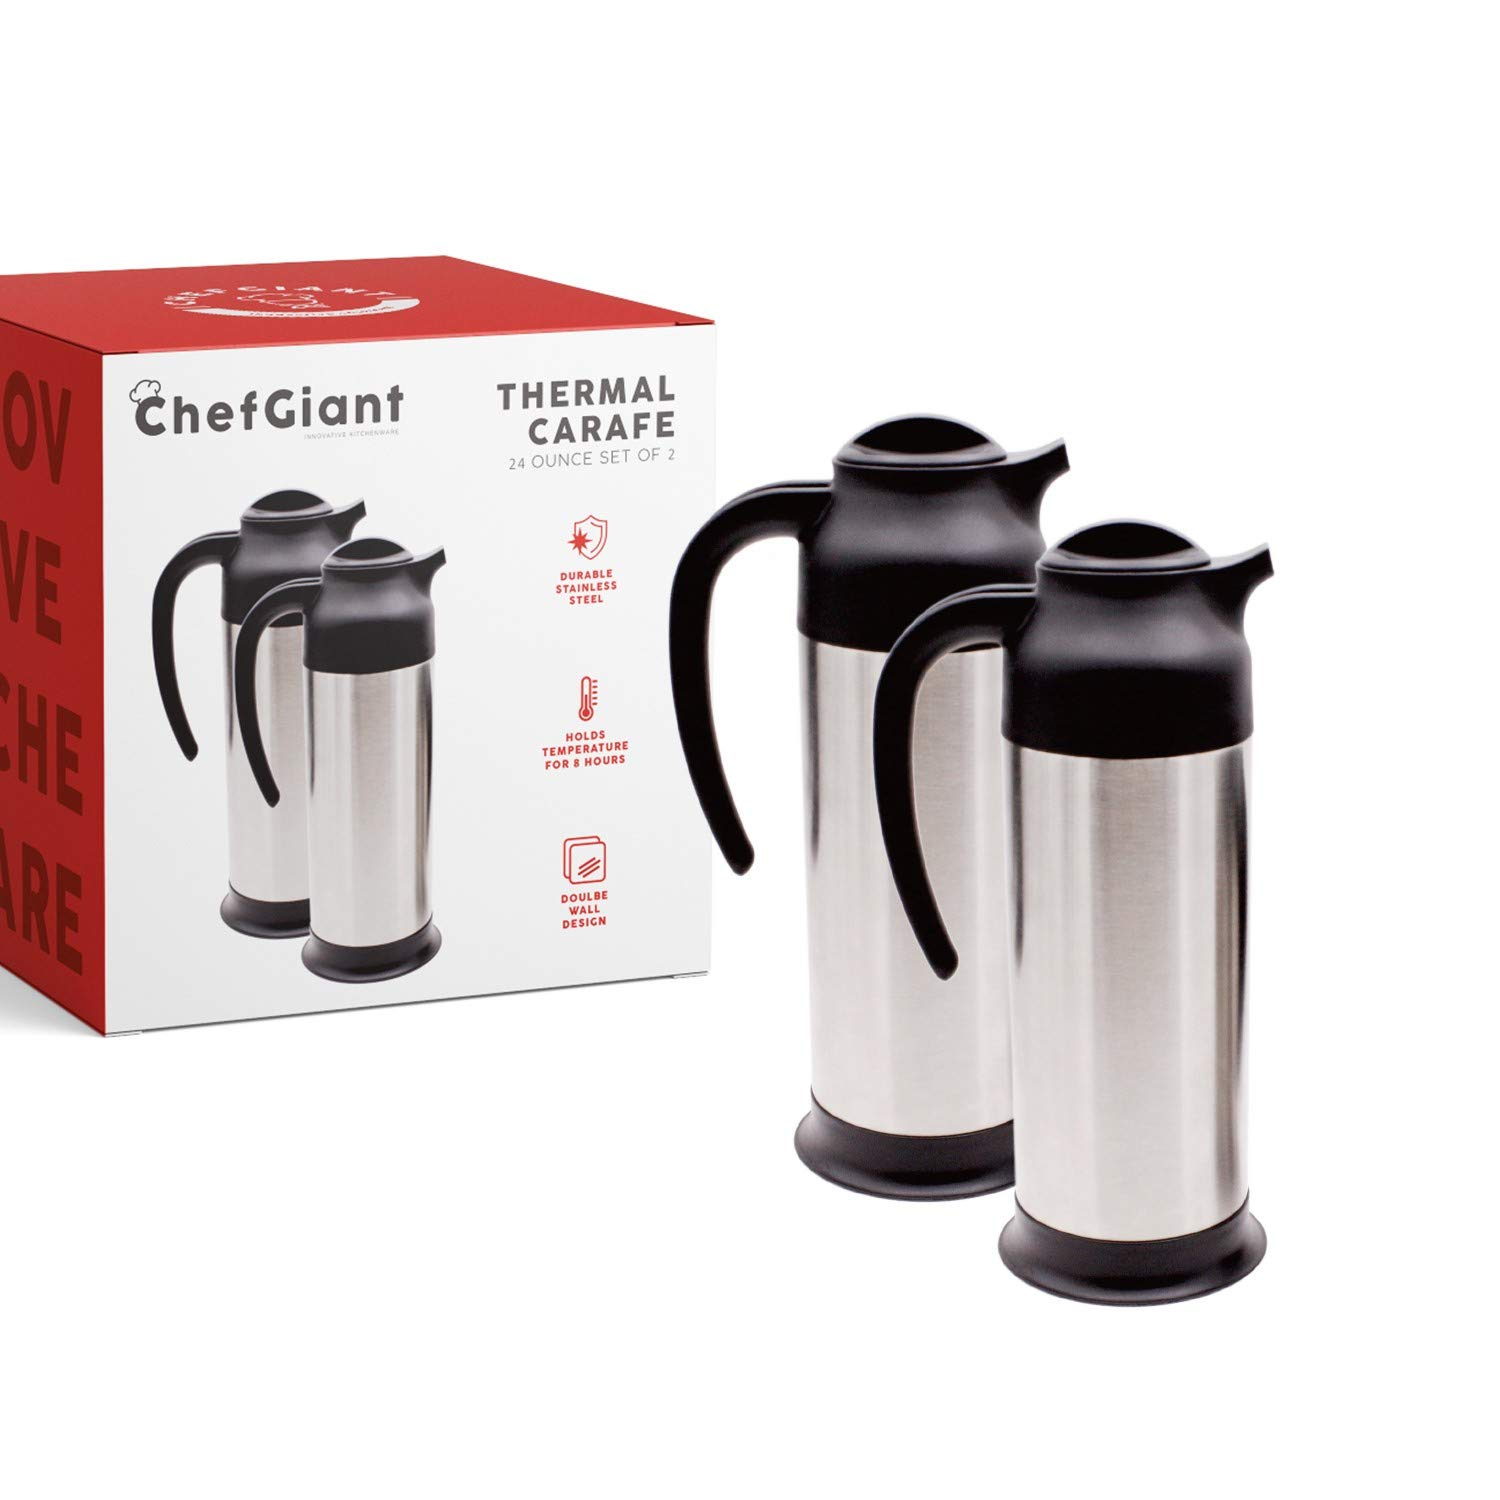 24 OZ STAINLESS STEEL THERMAL HOT-COLD CARAFE / DOUBLE WALLED THERMOS / UP TO 10 HOURS HEAT RETENTION (SET OF 2)